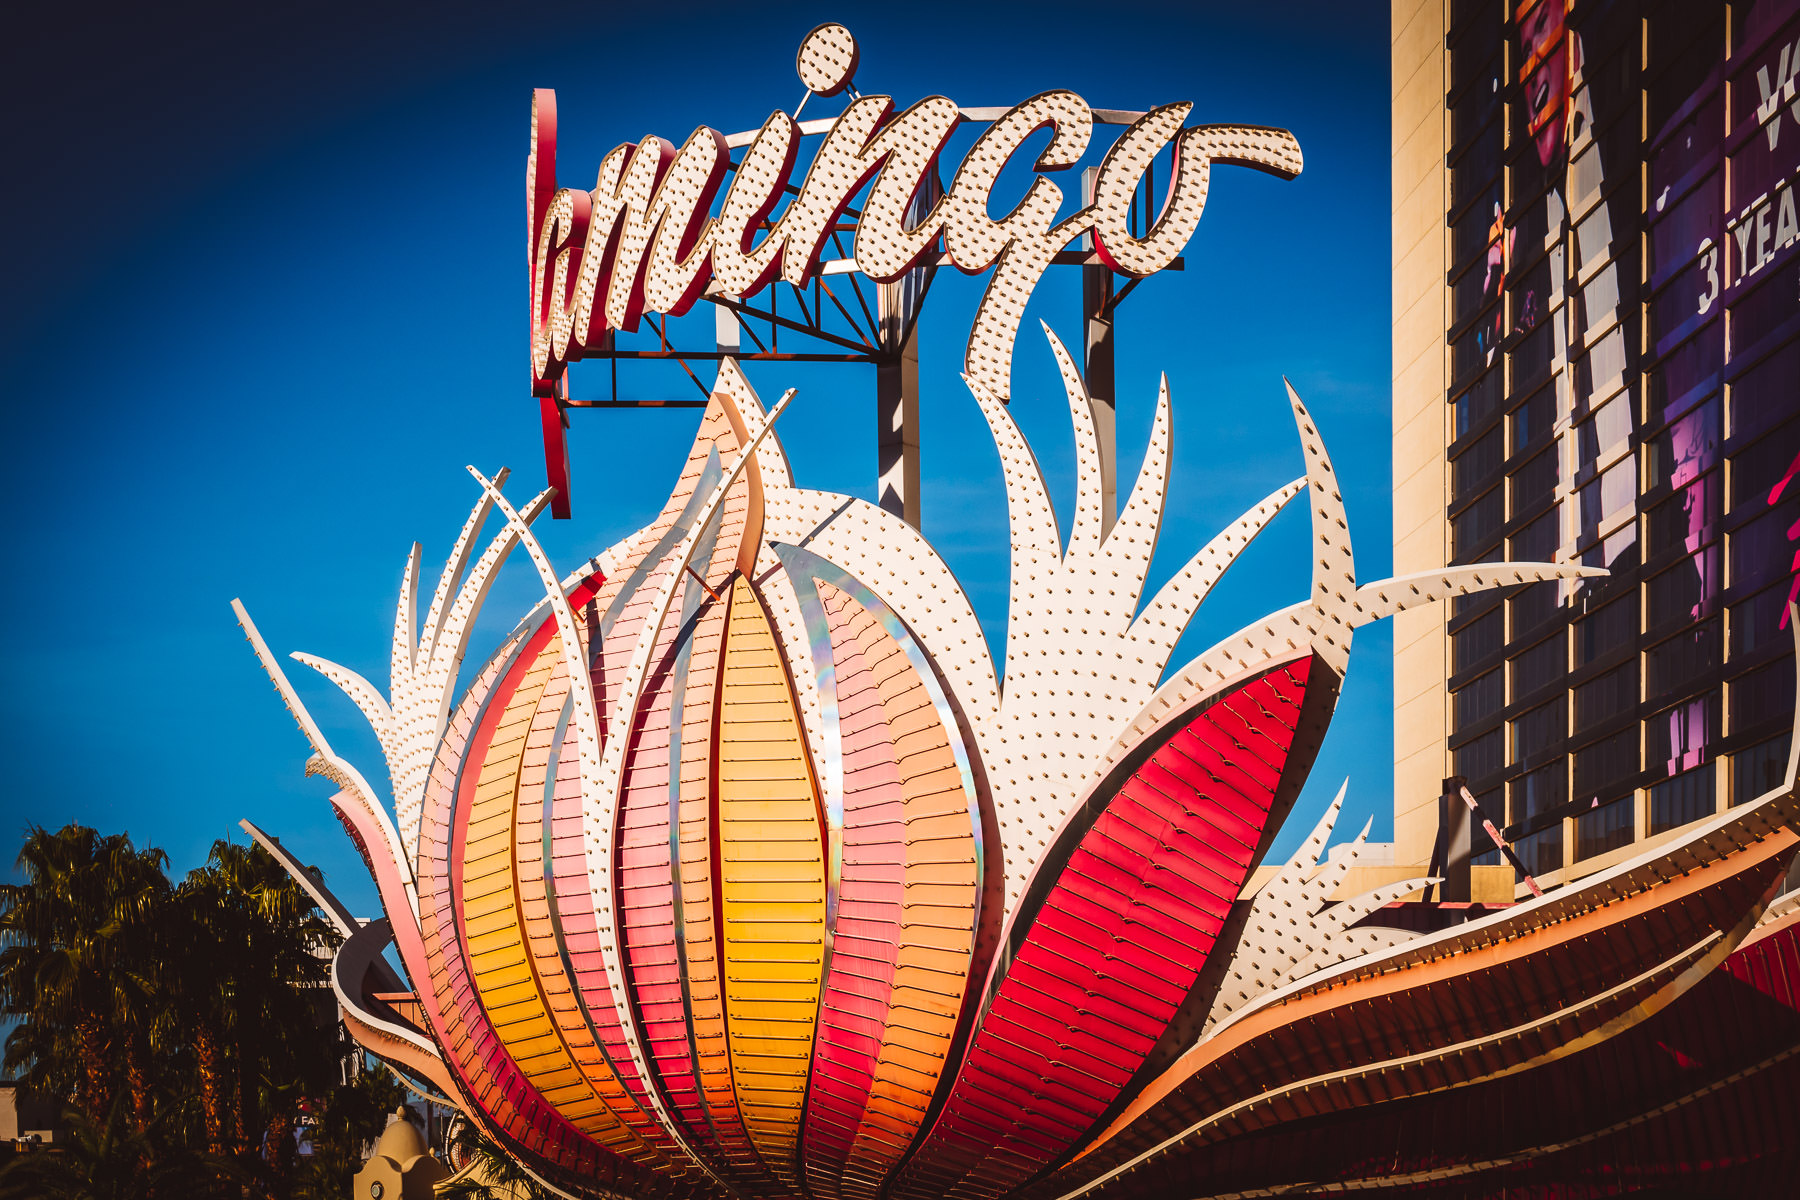 One of the signs at Las Vegas Flamingo Hotel and Casino.